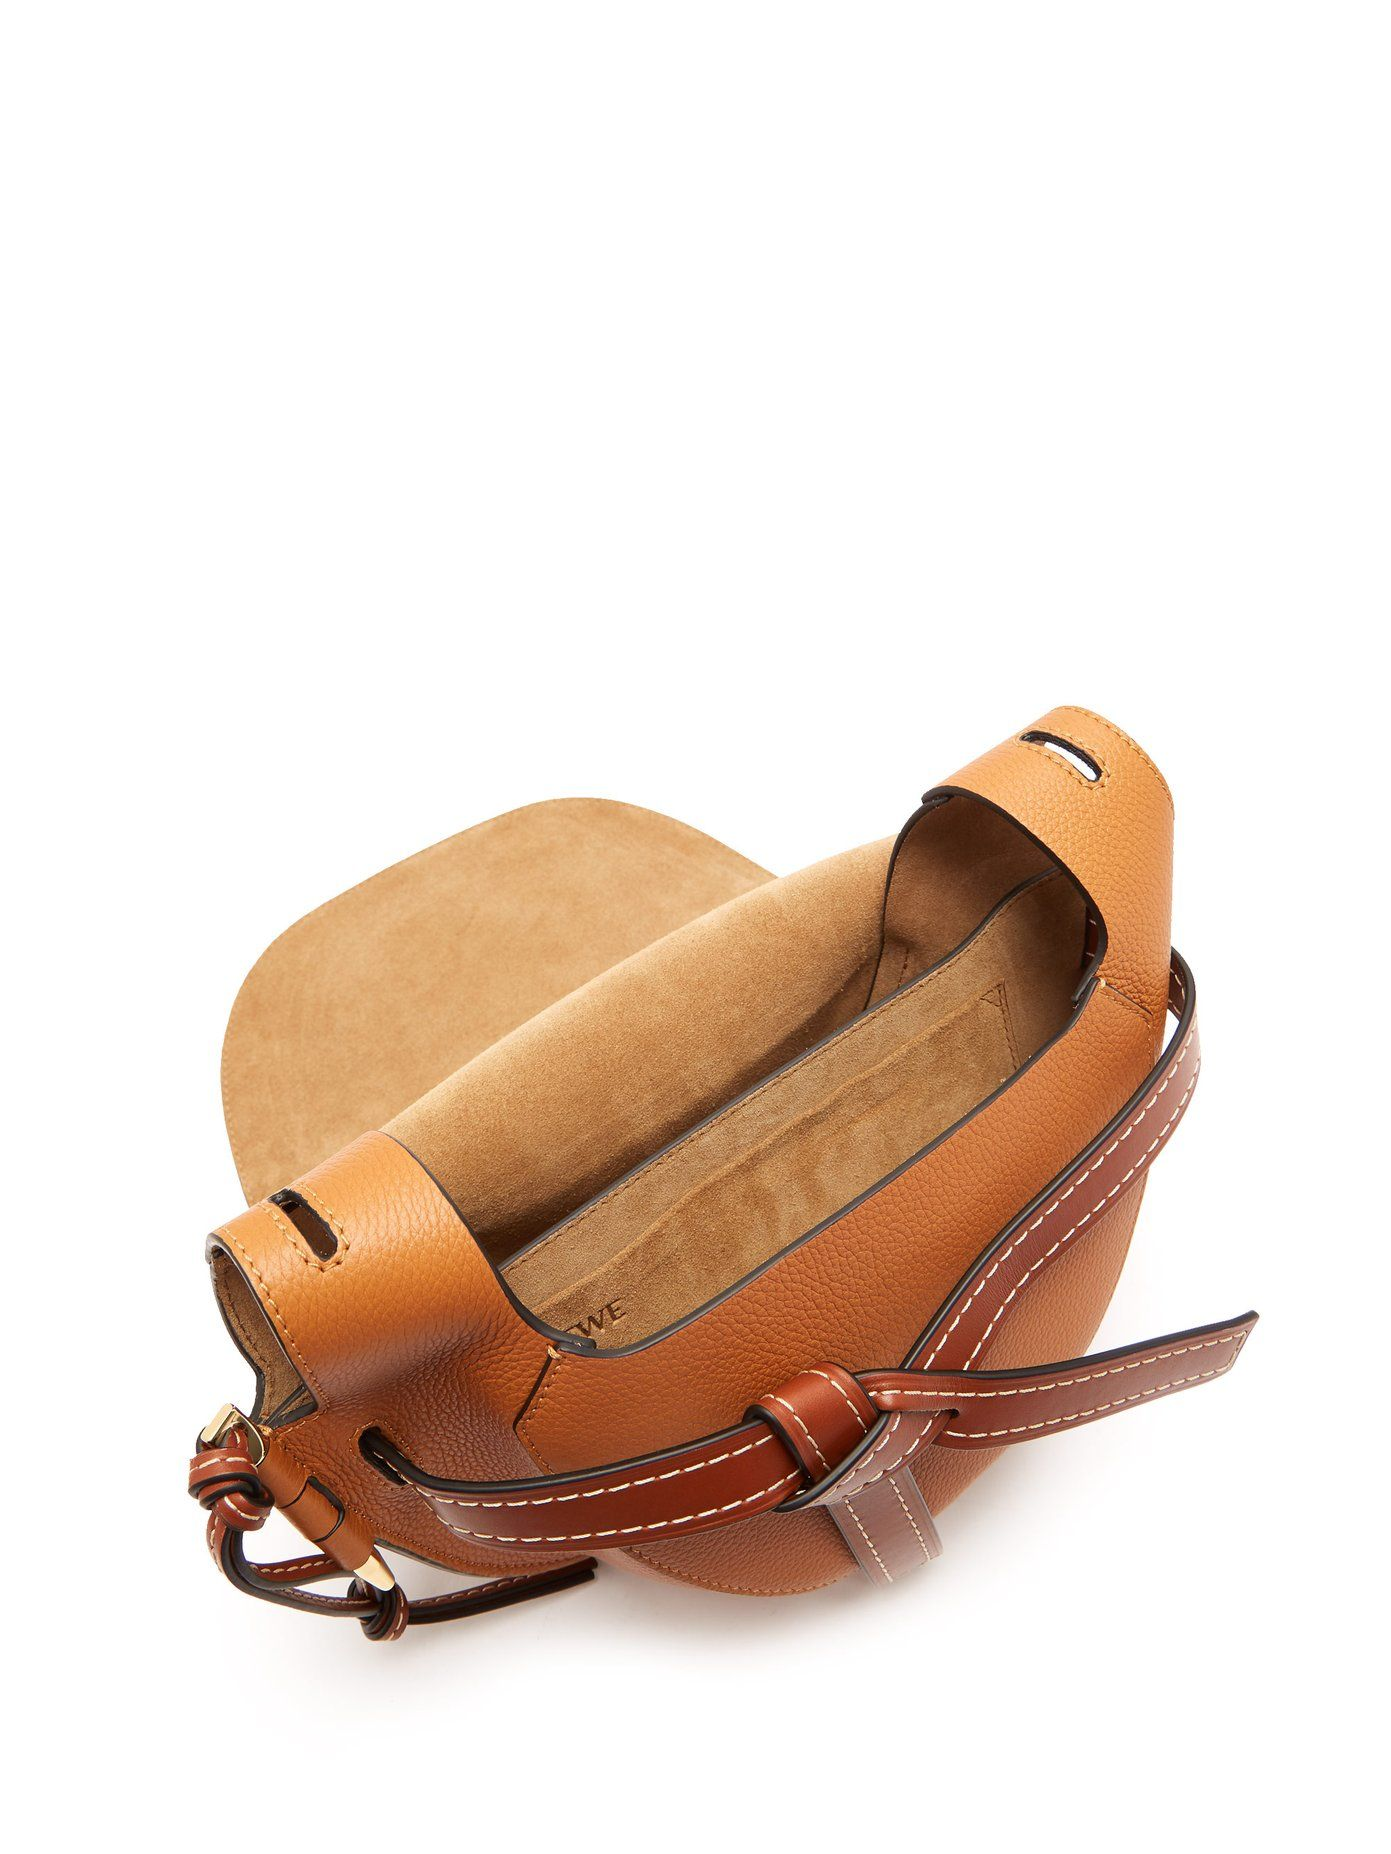 9a204351b3a Gate small grained-leather cross-body bag | Loewe | MATCHESFASHION ...